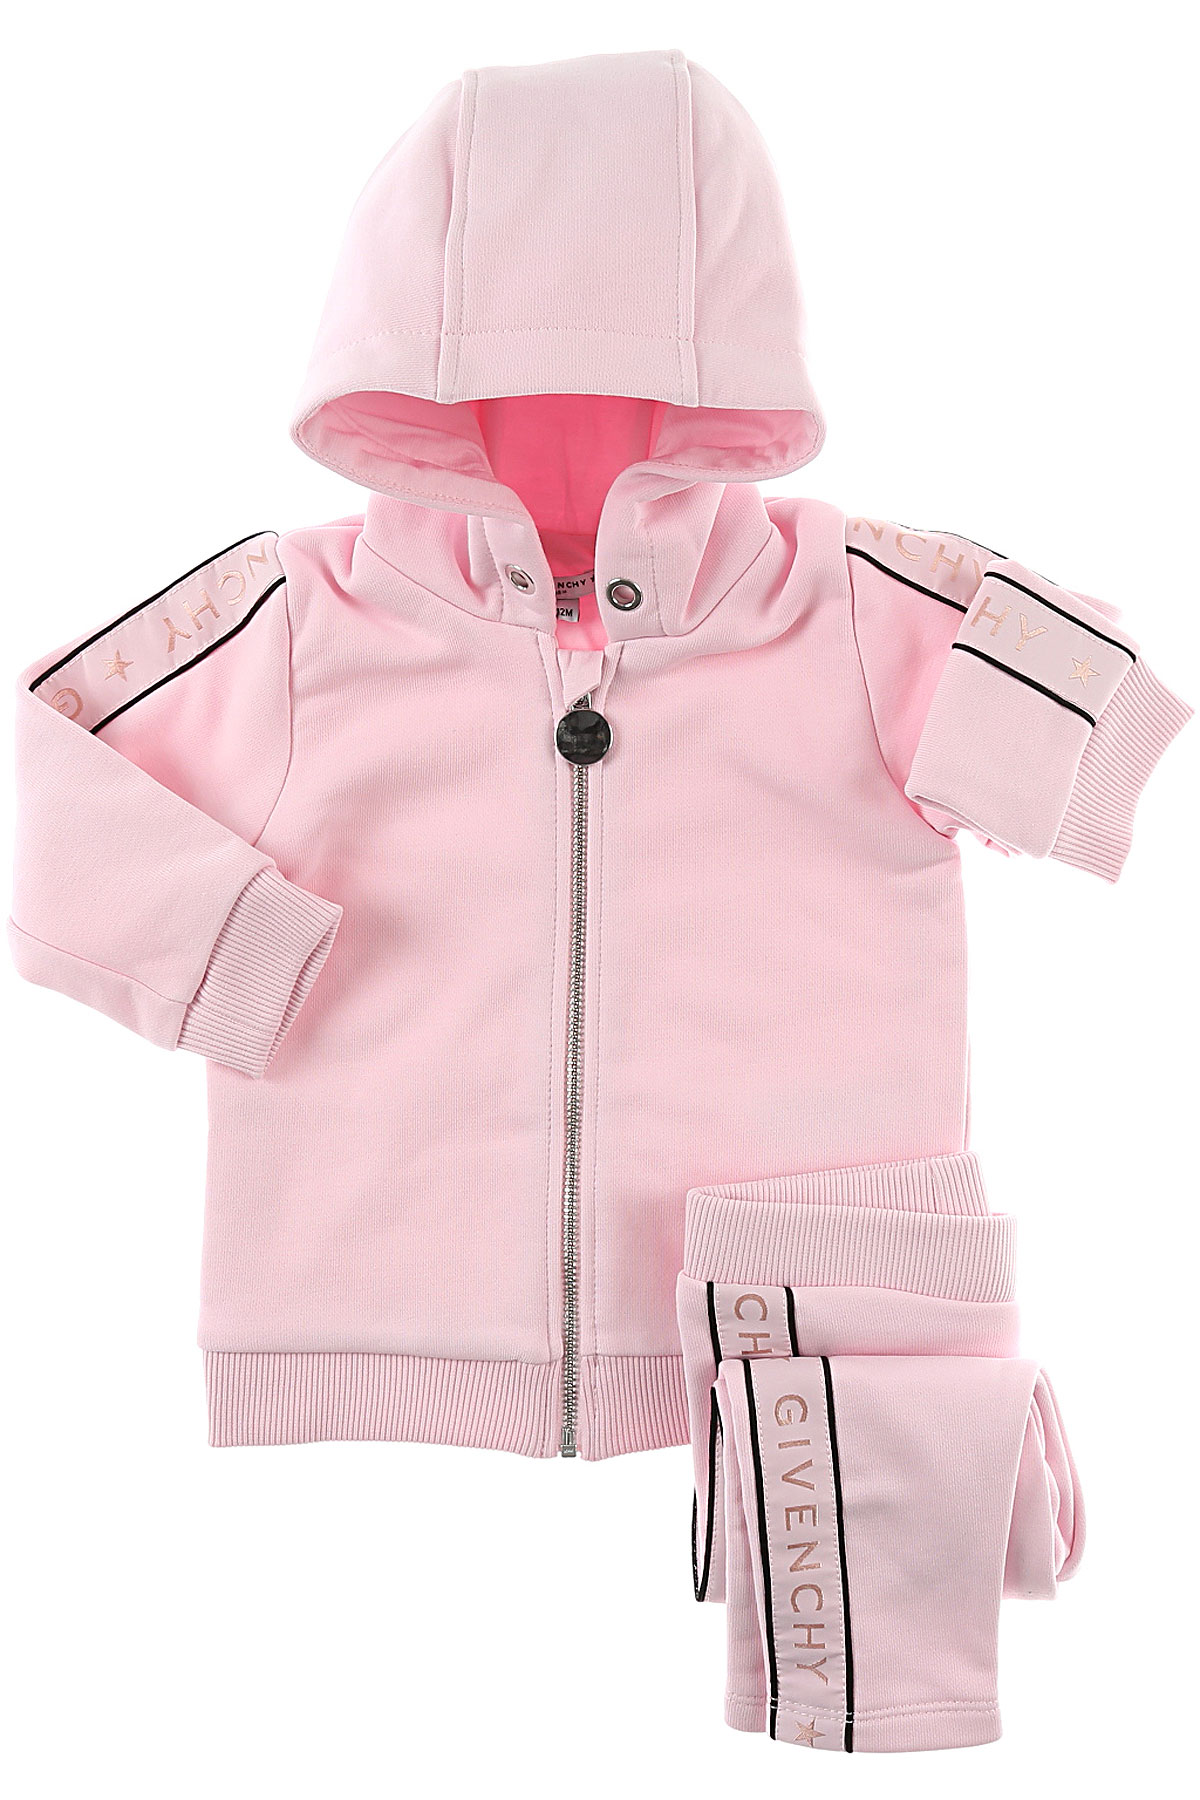 Image of Givenchy Baby Sets for Girls, Pink, Cotton, 2017, 12M 18M 2Y 6M 9M